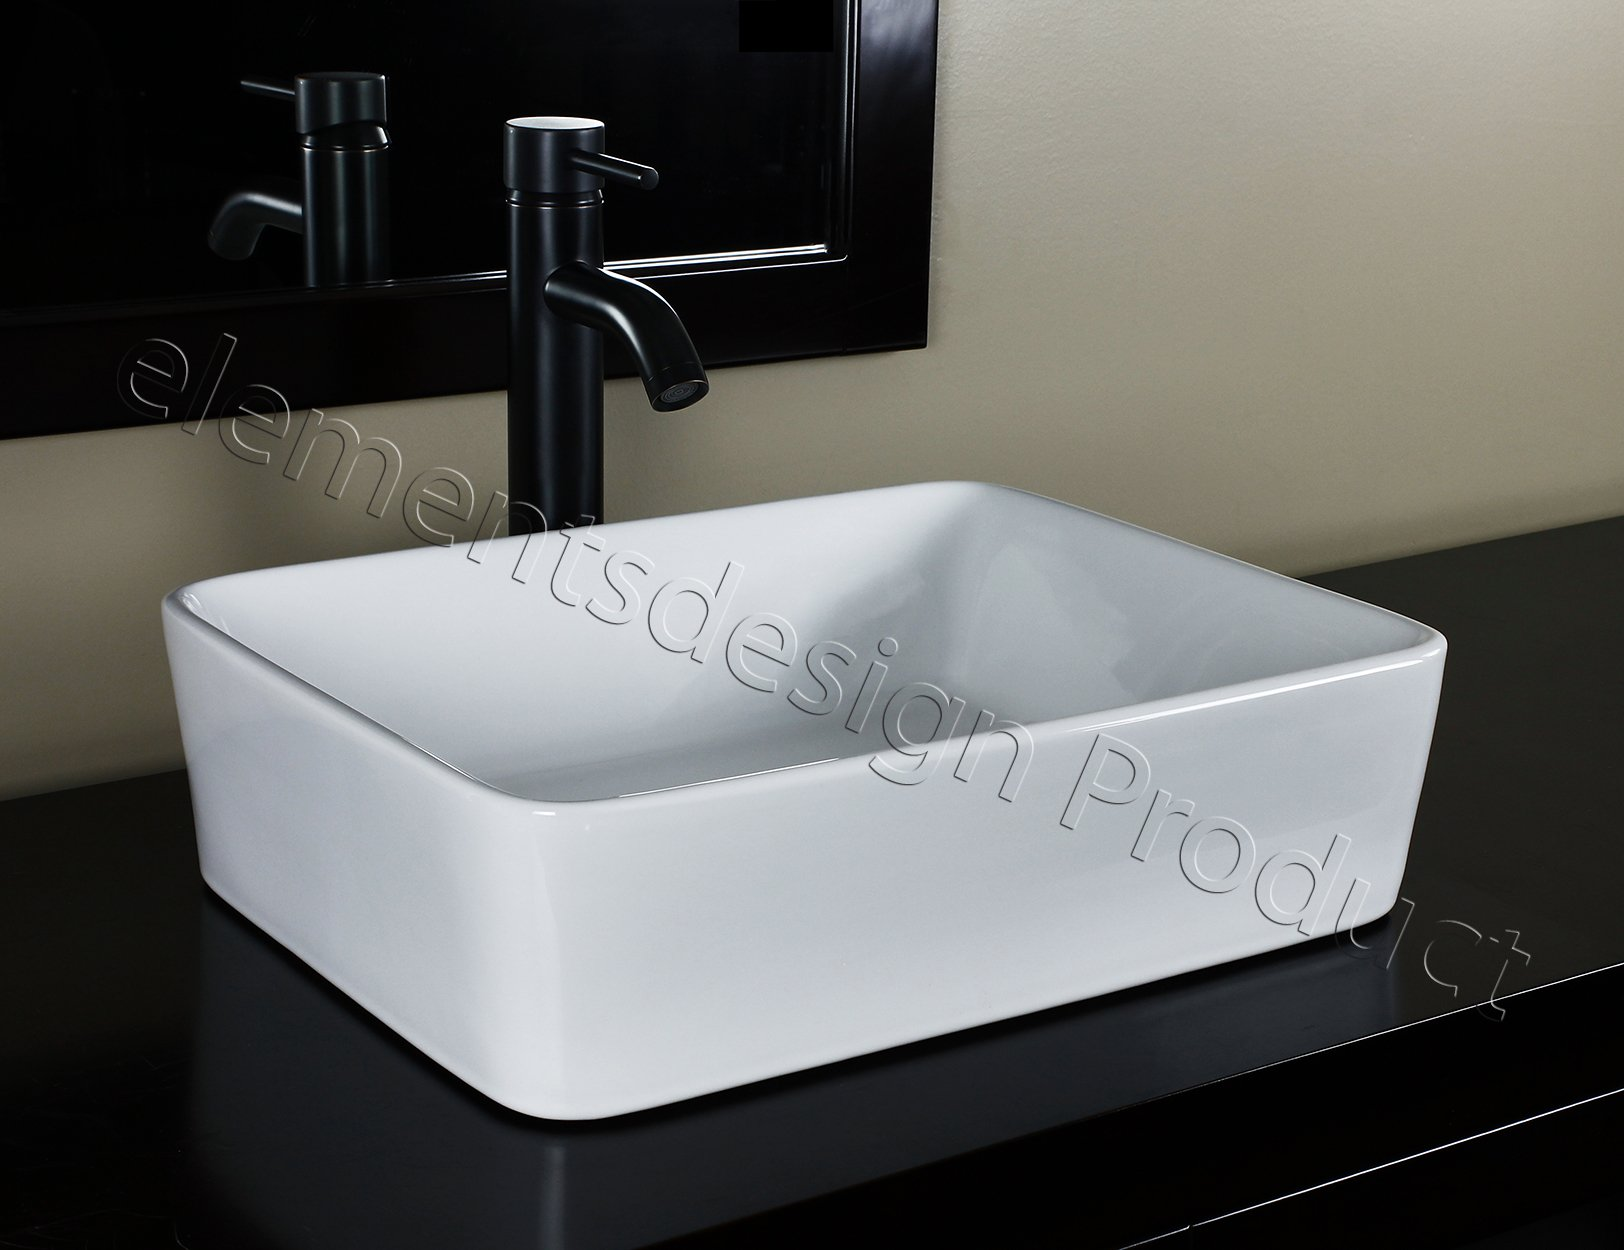 Bathroom Ceramic Porcelain Vessel Sink CV7050E3 Oil Rubbed Bronze Faucet Pop Up drain by ELIMAX'S